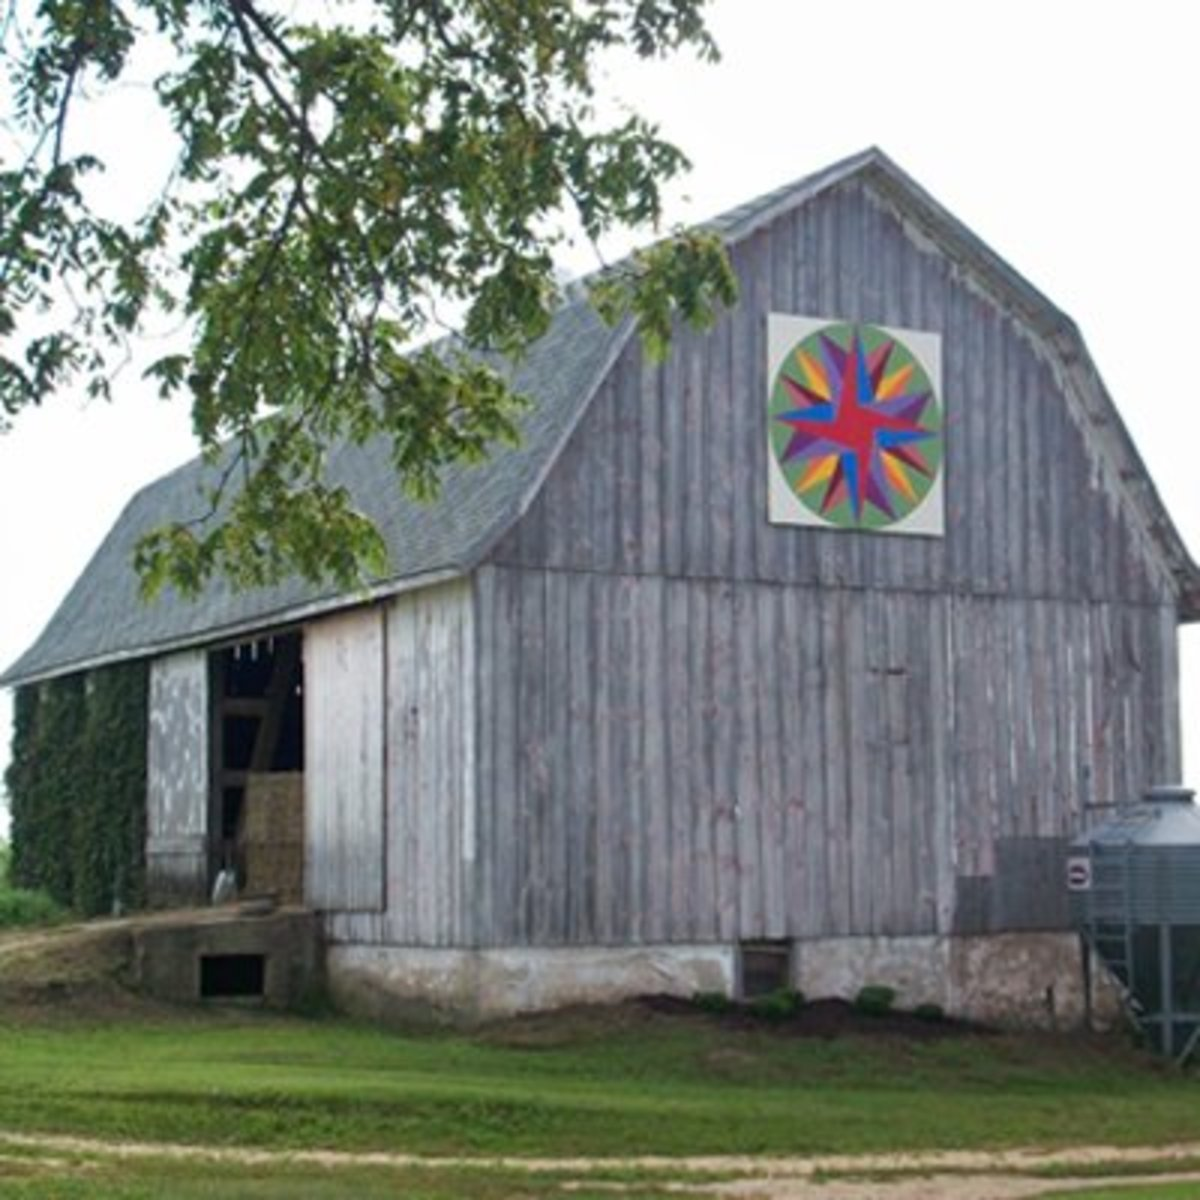 Barn Quilts ... Covering Barns Across Rural America